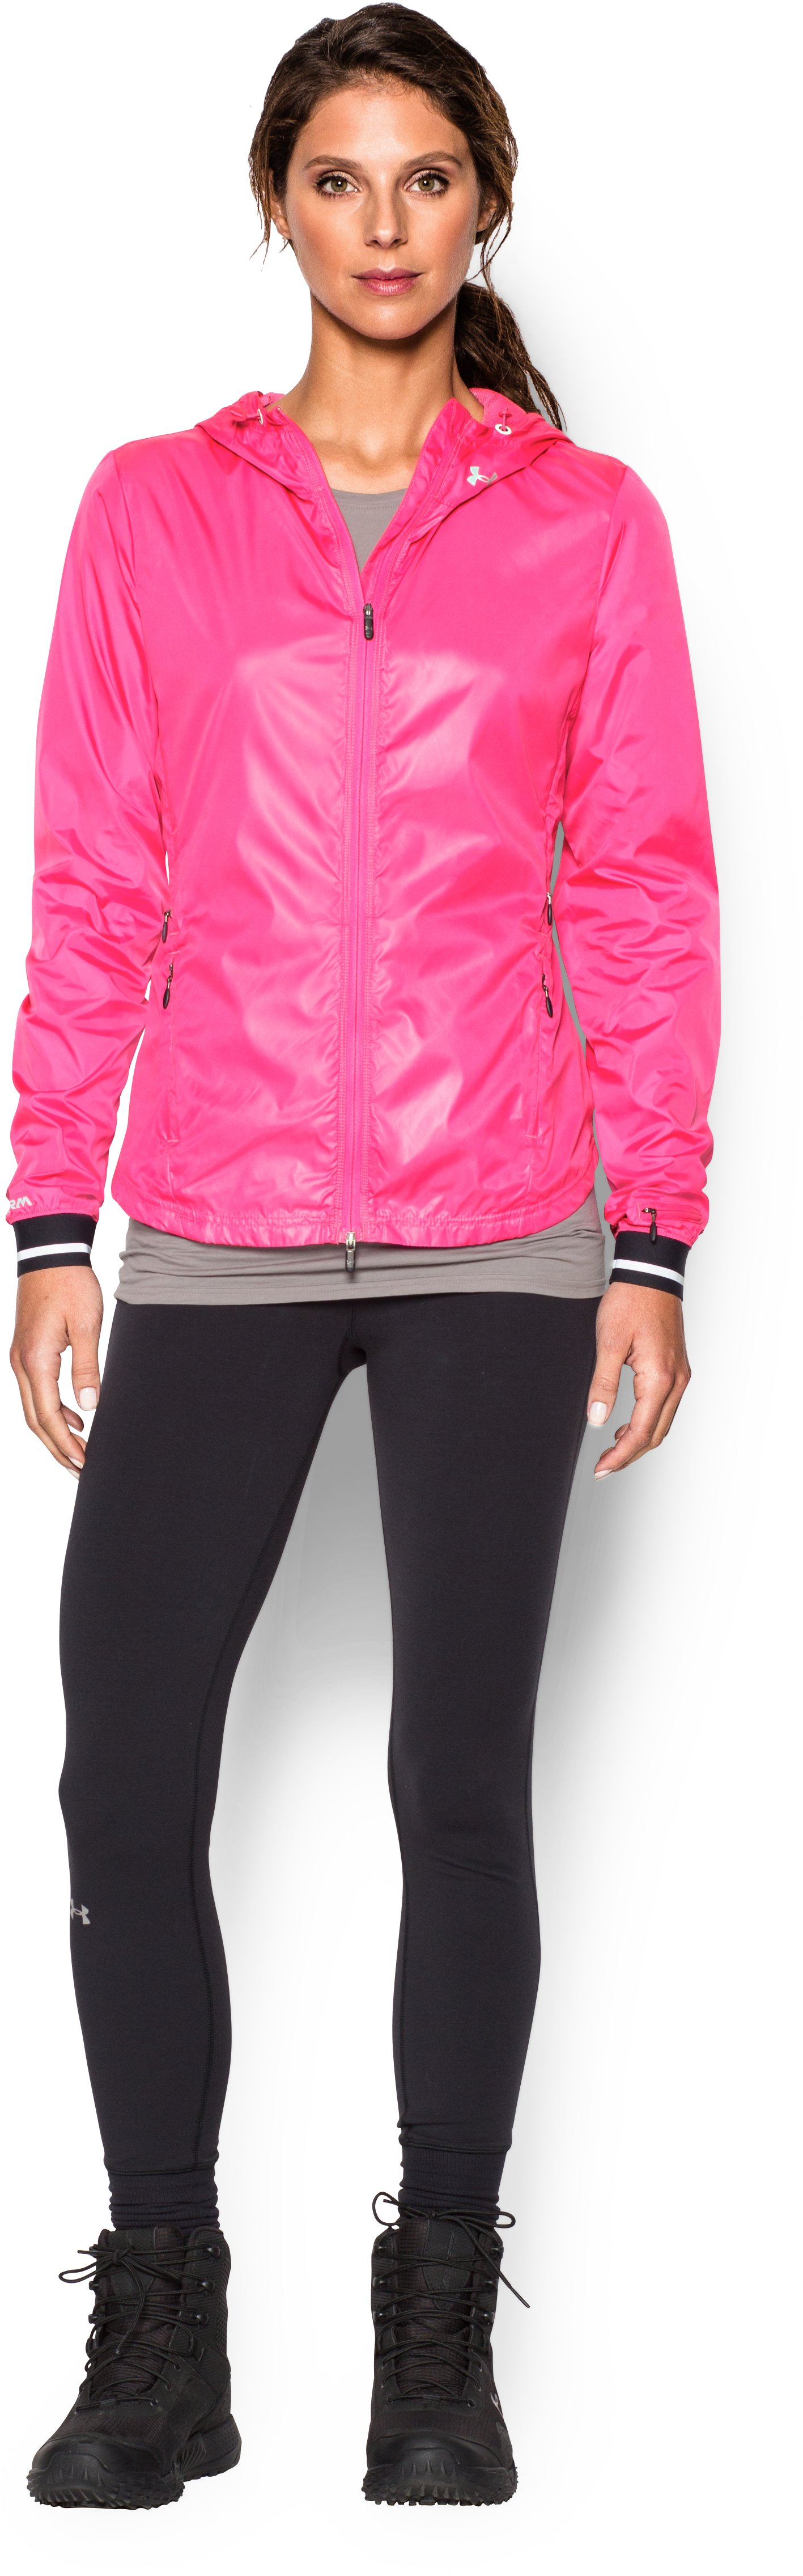 Women's UA Storm Layered Up Jacket, REBEL PINK, Front